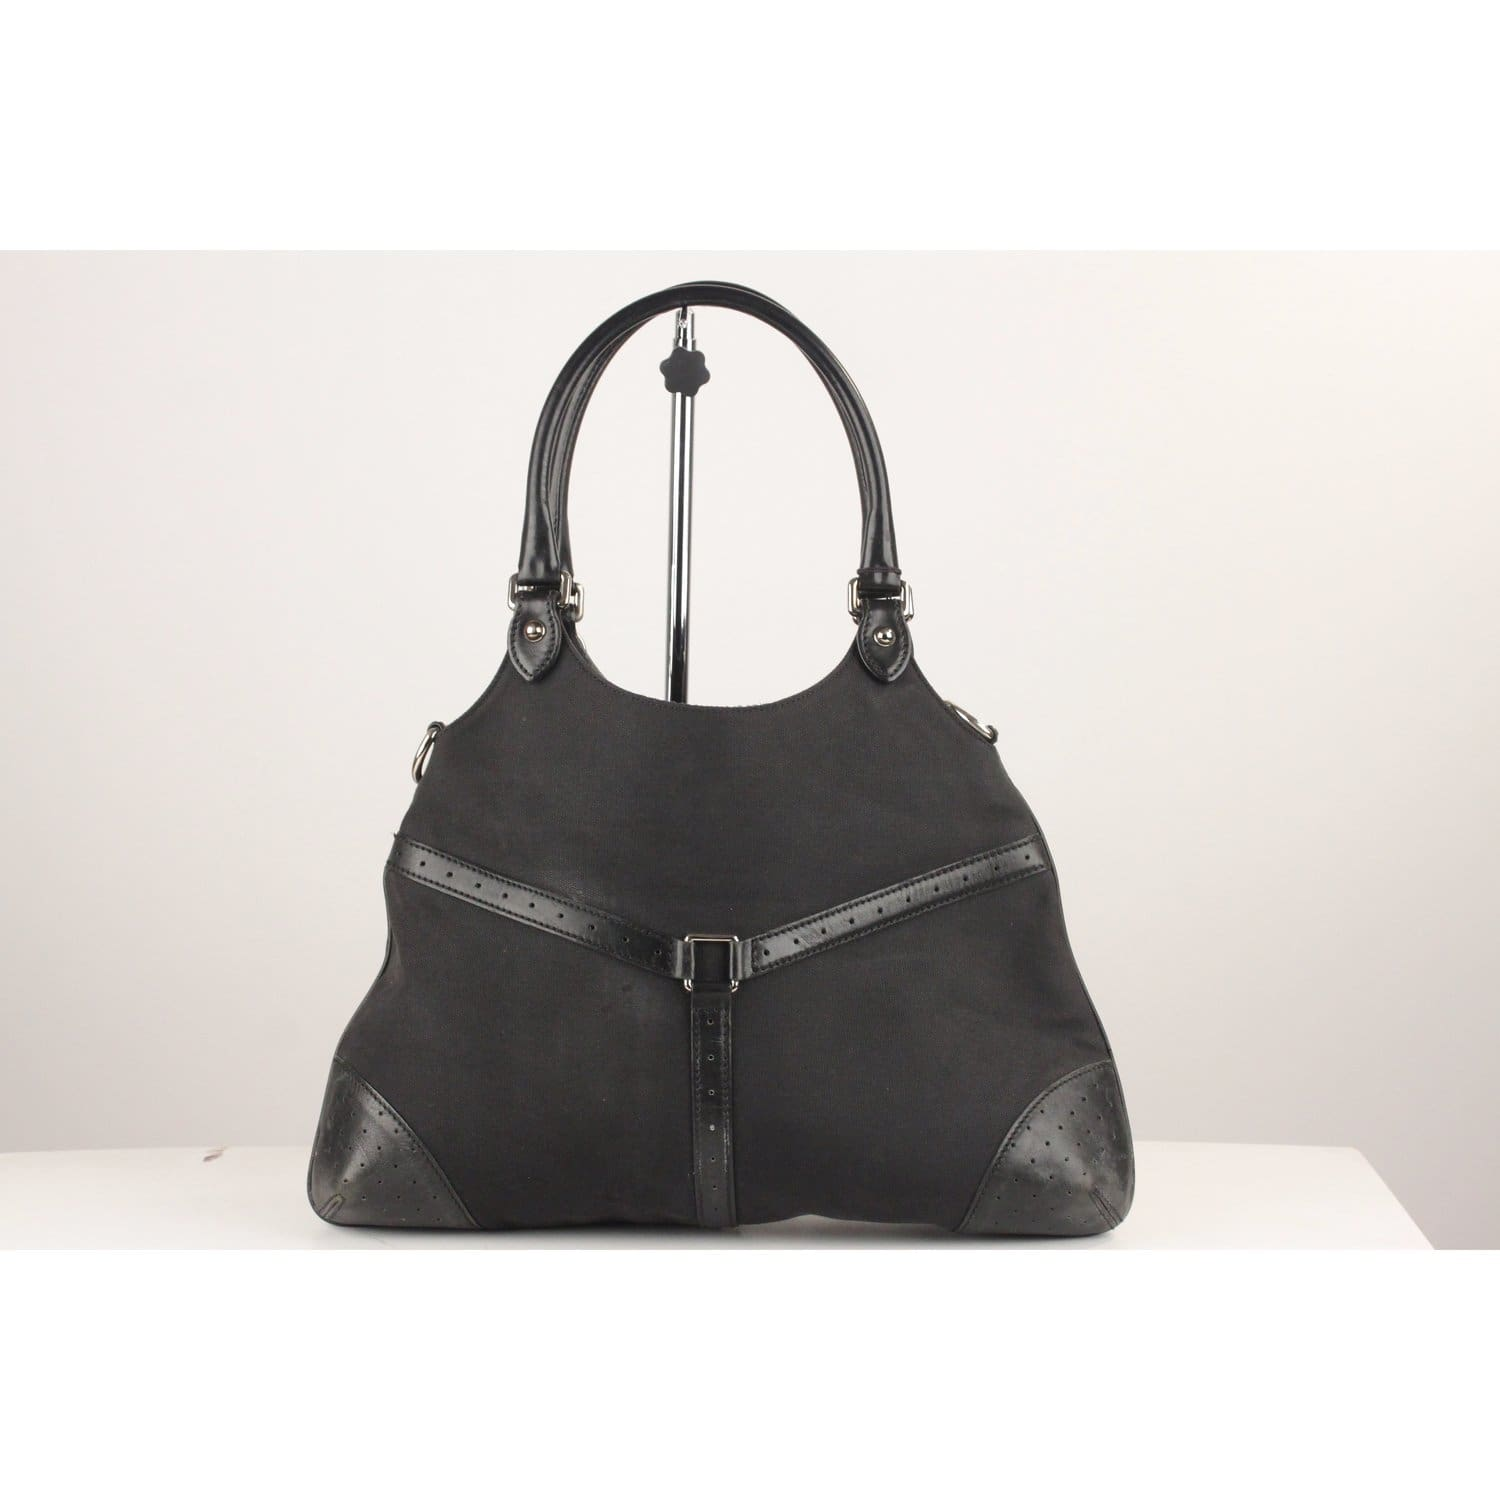 062e6647417 Enjoy Gucci Reins Hobo Bag Tote GG Logo at OPHERTYCIOCCI – OPHERTY ...